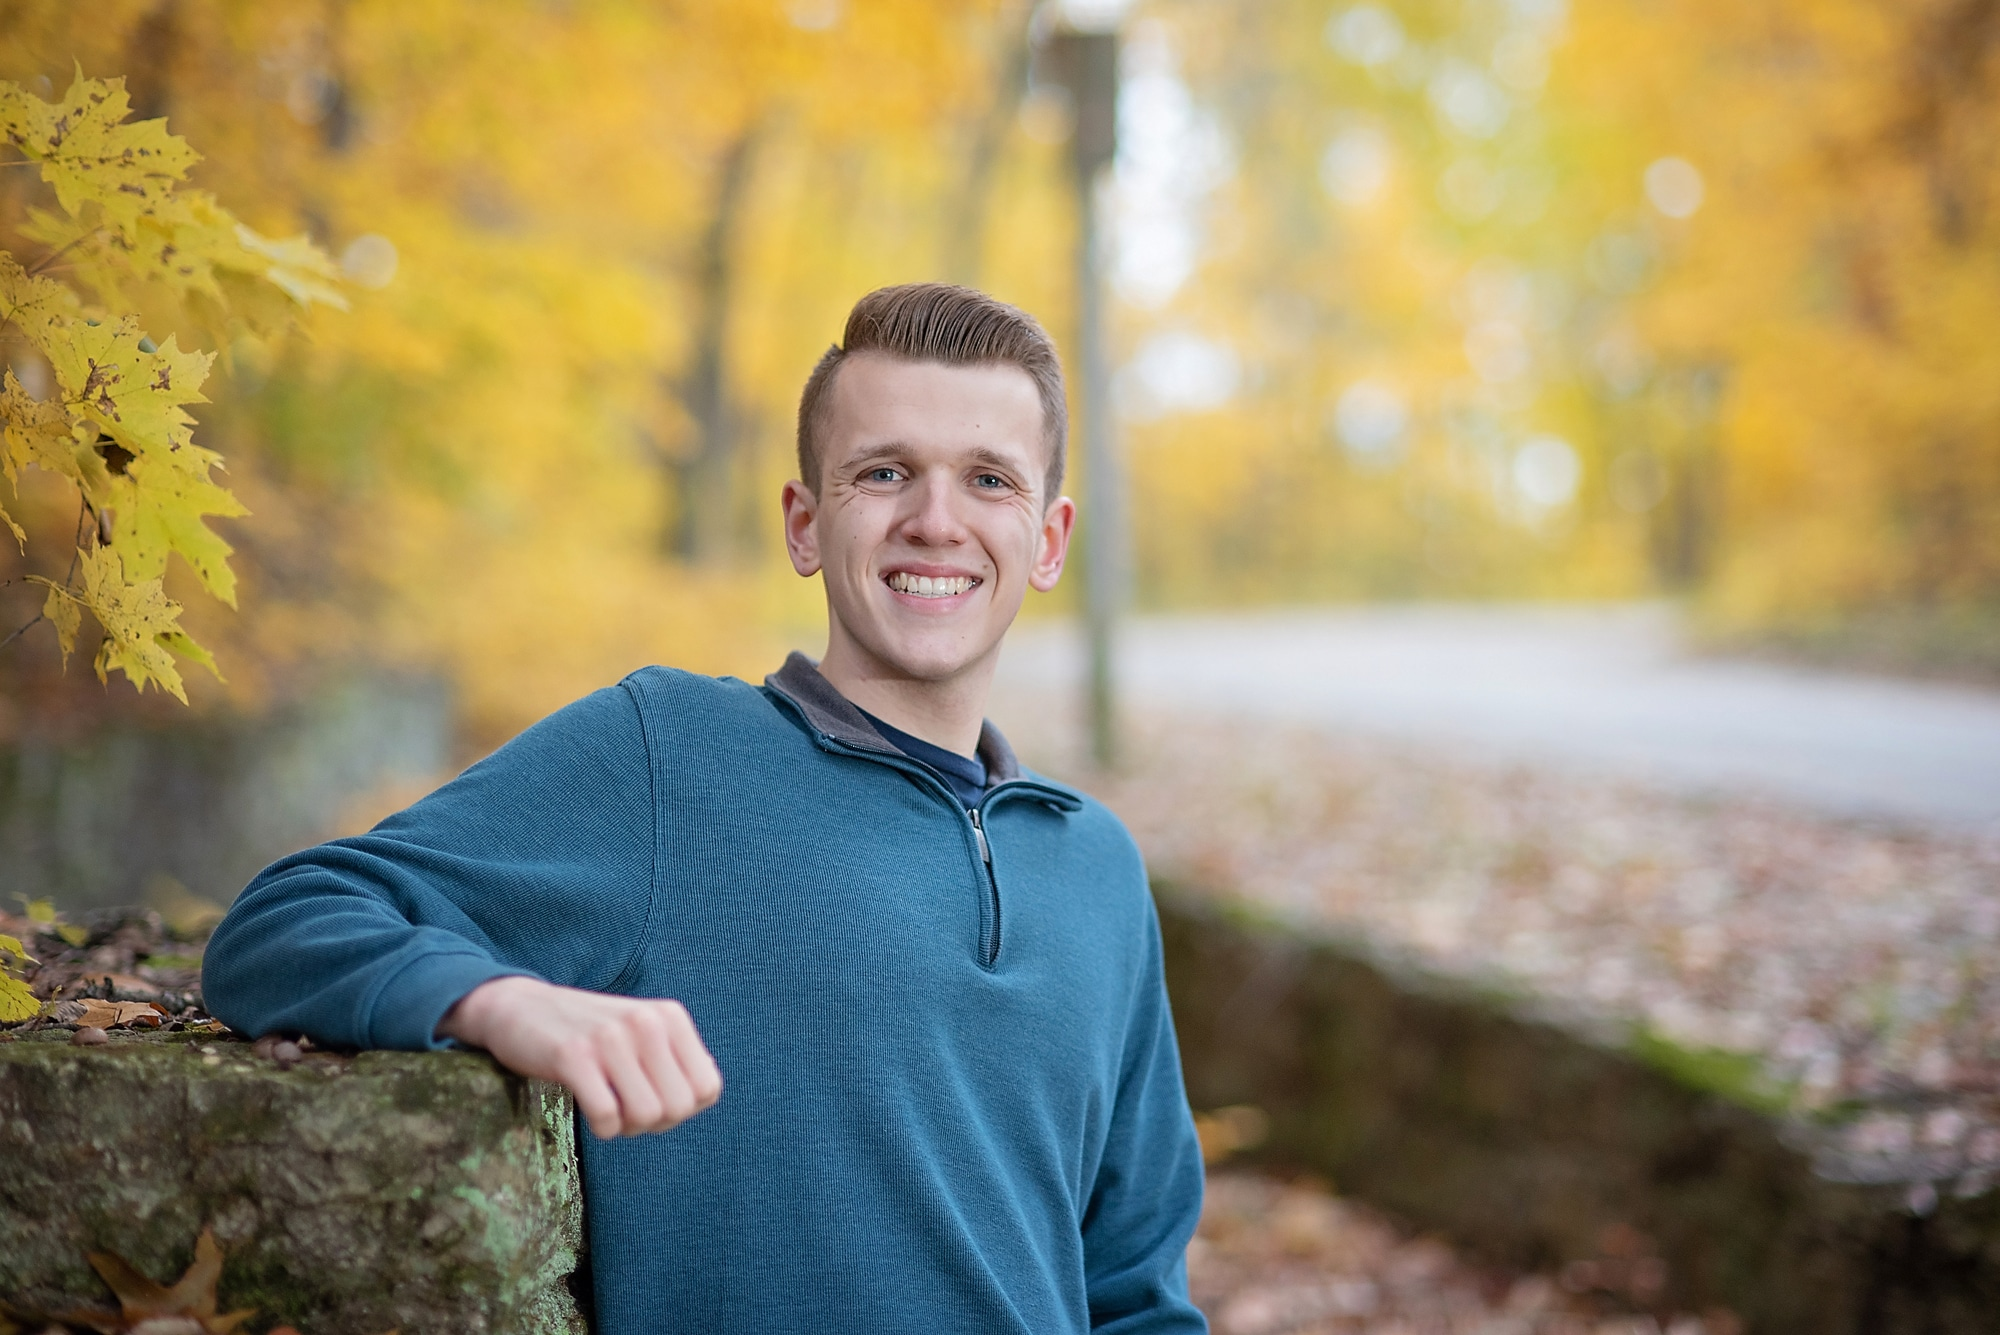 Senior Boy Photo smiling in fall leaves